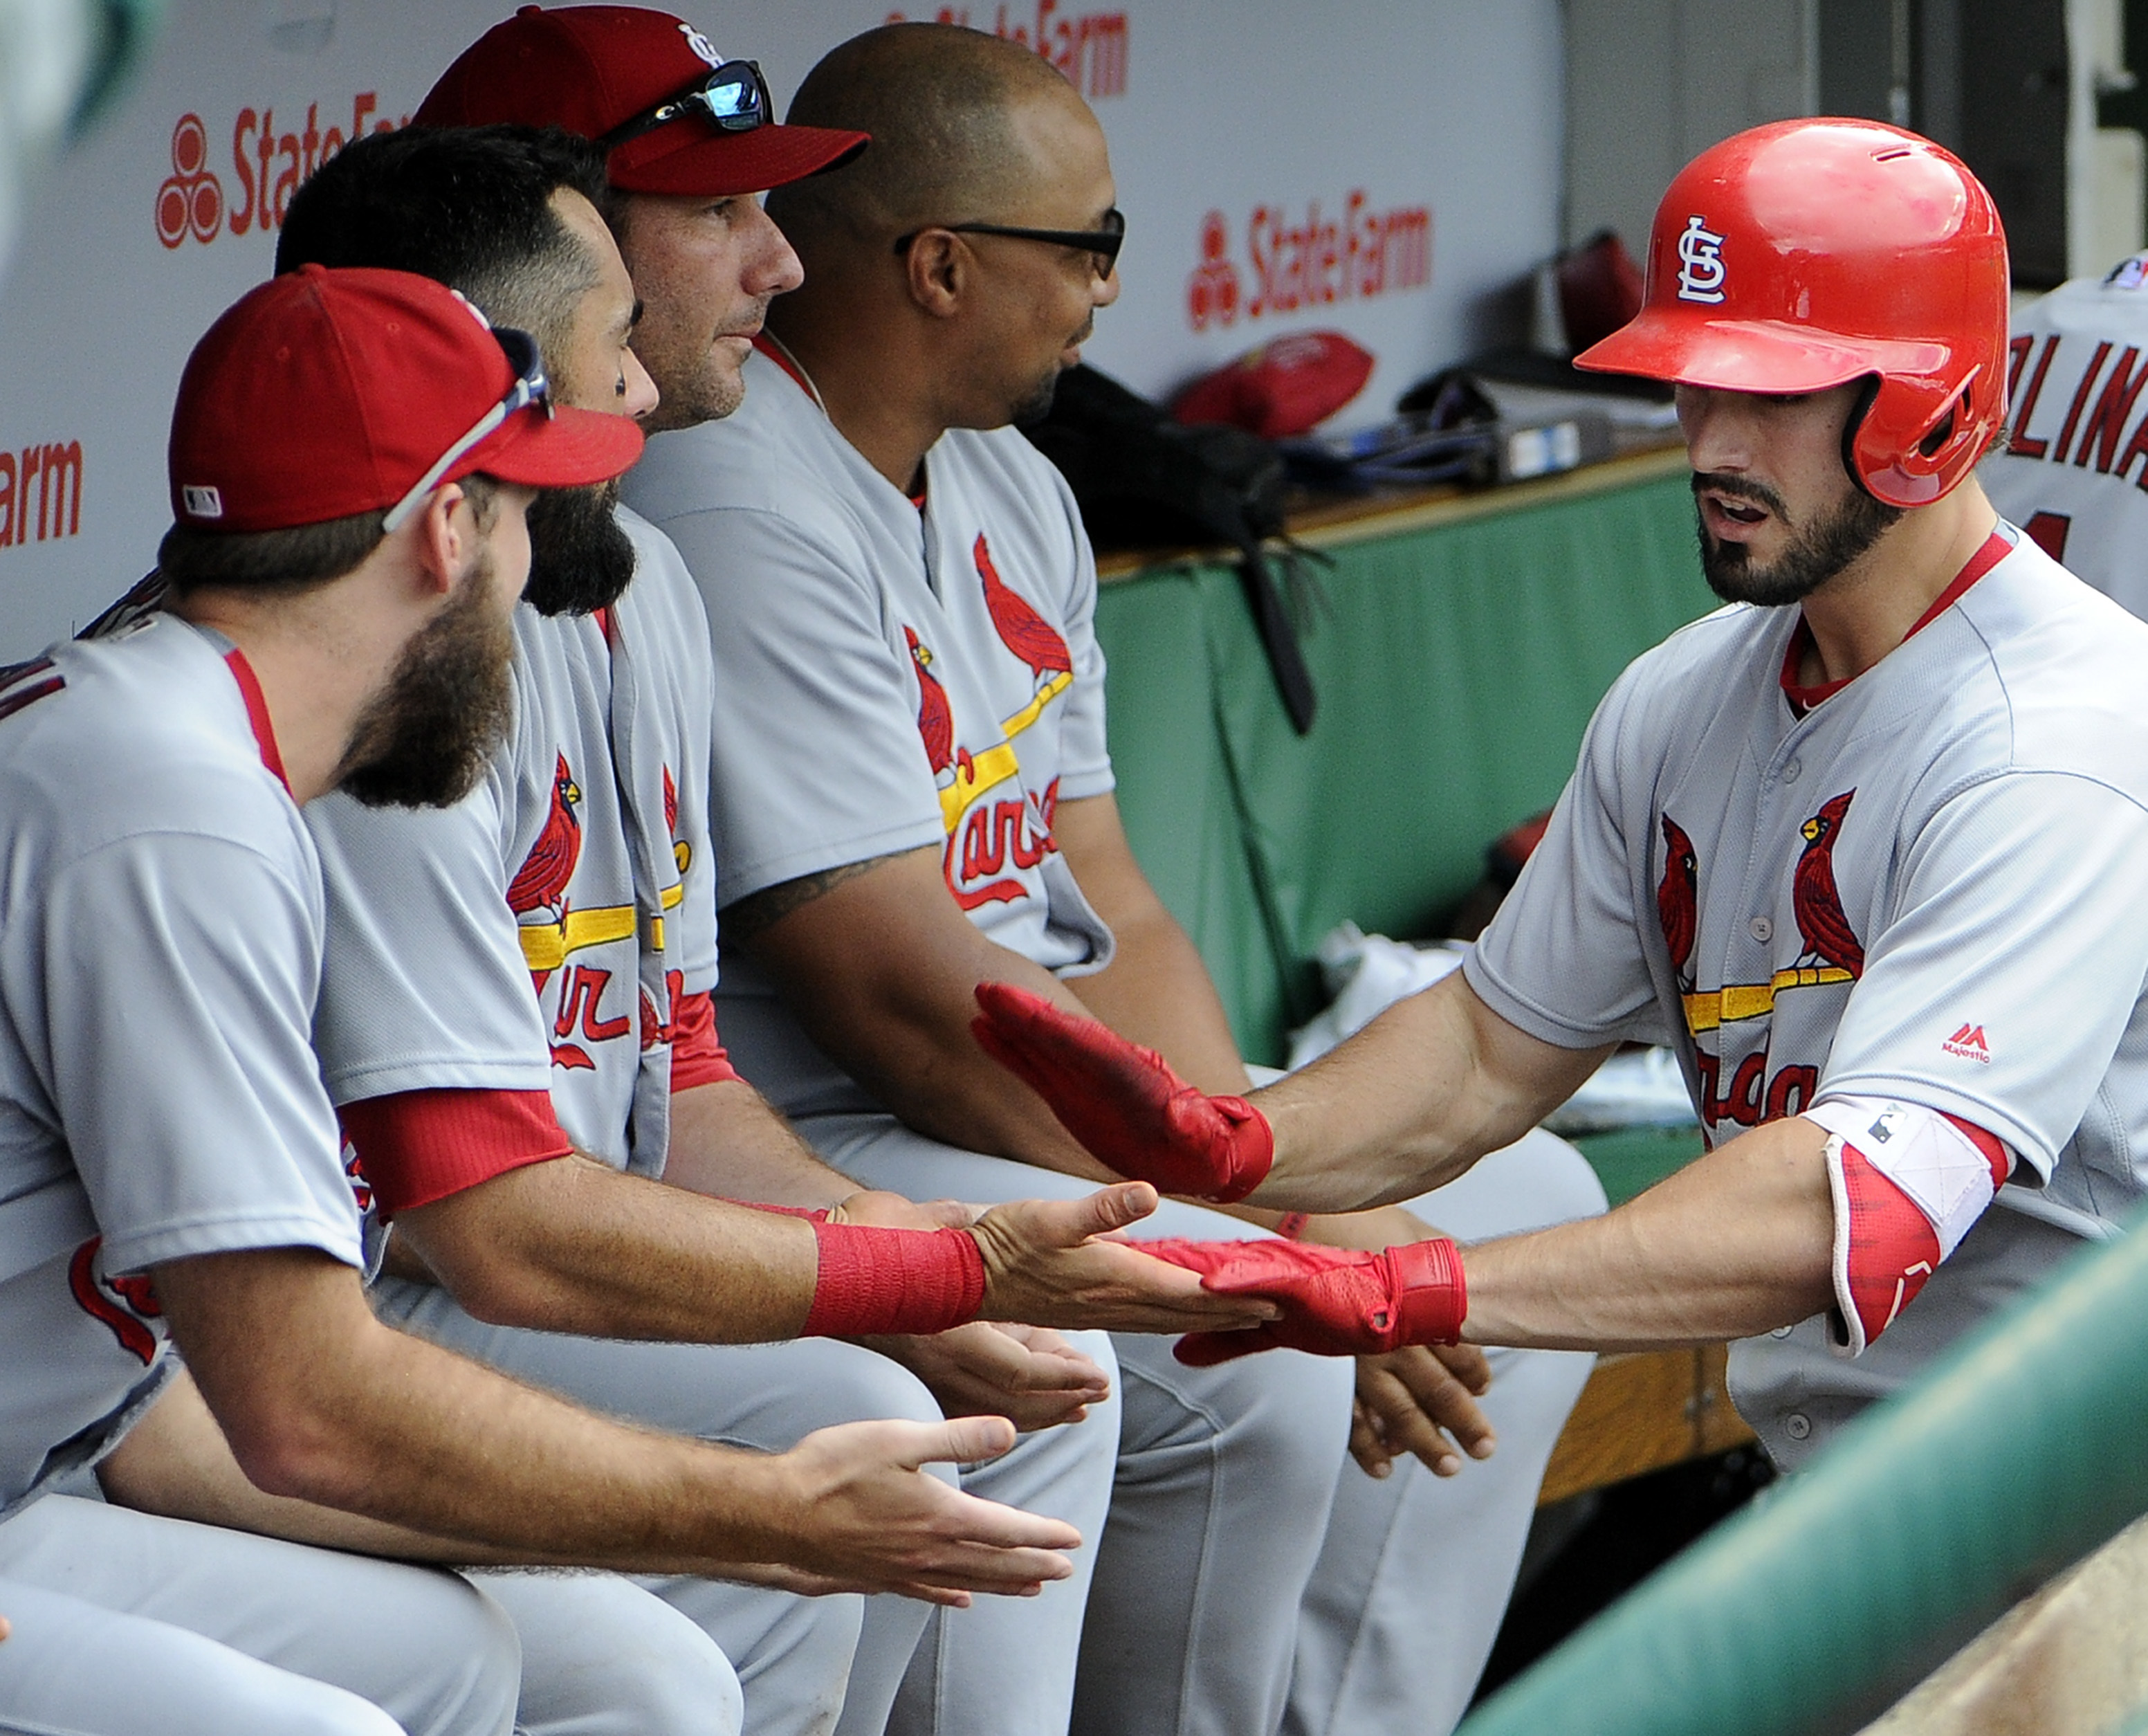 St. Louis Cardinals' Randal Grichuk, right, is greeted by his teammates after hitting a grand slam against the Chicago Cubs during the eighth inning of a baseball game, Saturday, Aug. 13, 2016, in Chicago. (AP Photo/David Banks)